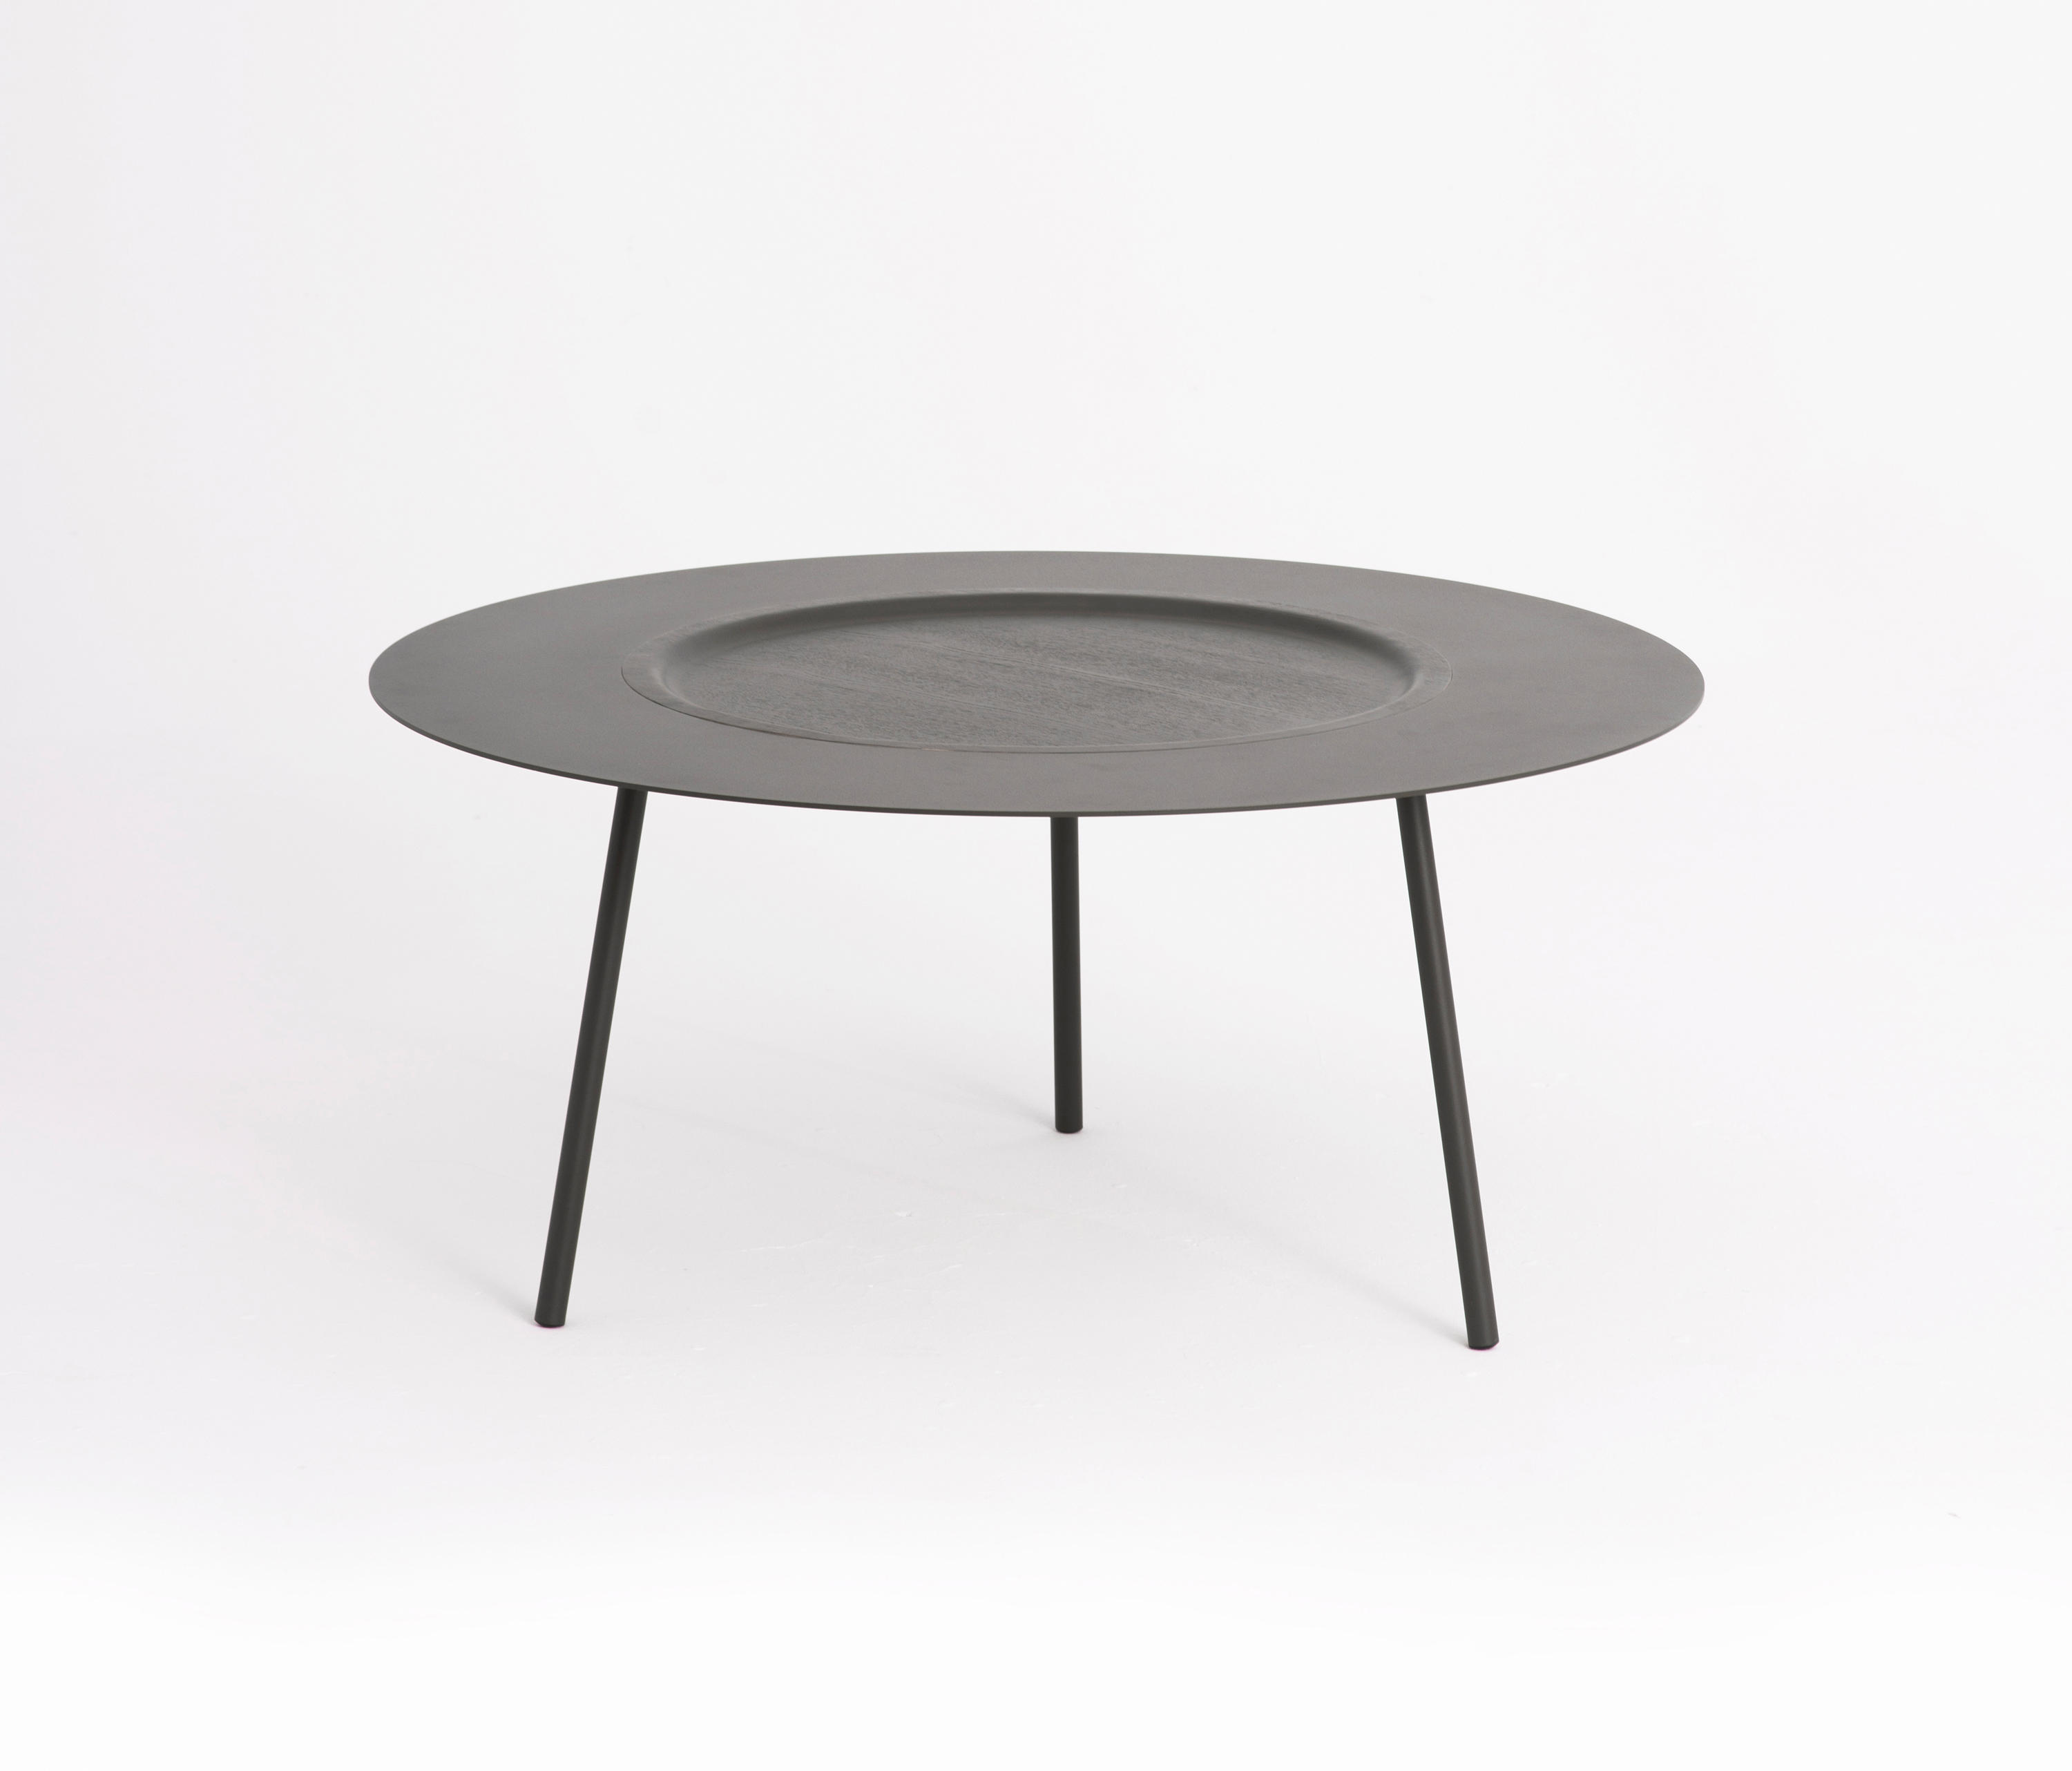 Remarkable Woodplate Coffee Table Big Grey Architonic Onthecornerstone Fun Painted Chair Ideas Images Onthecornerstoneorg